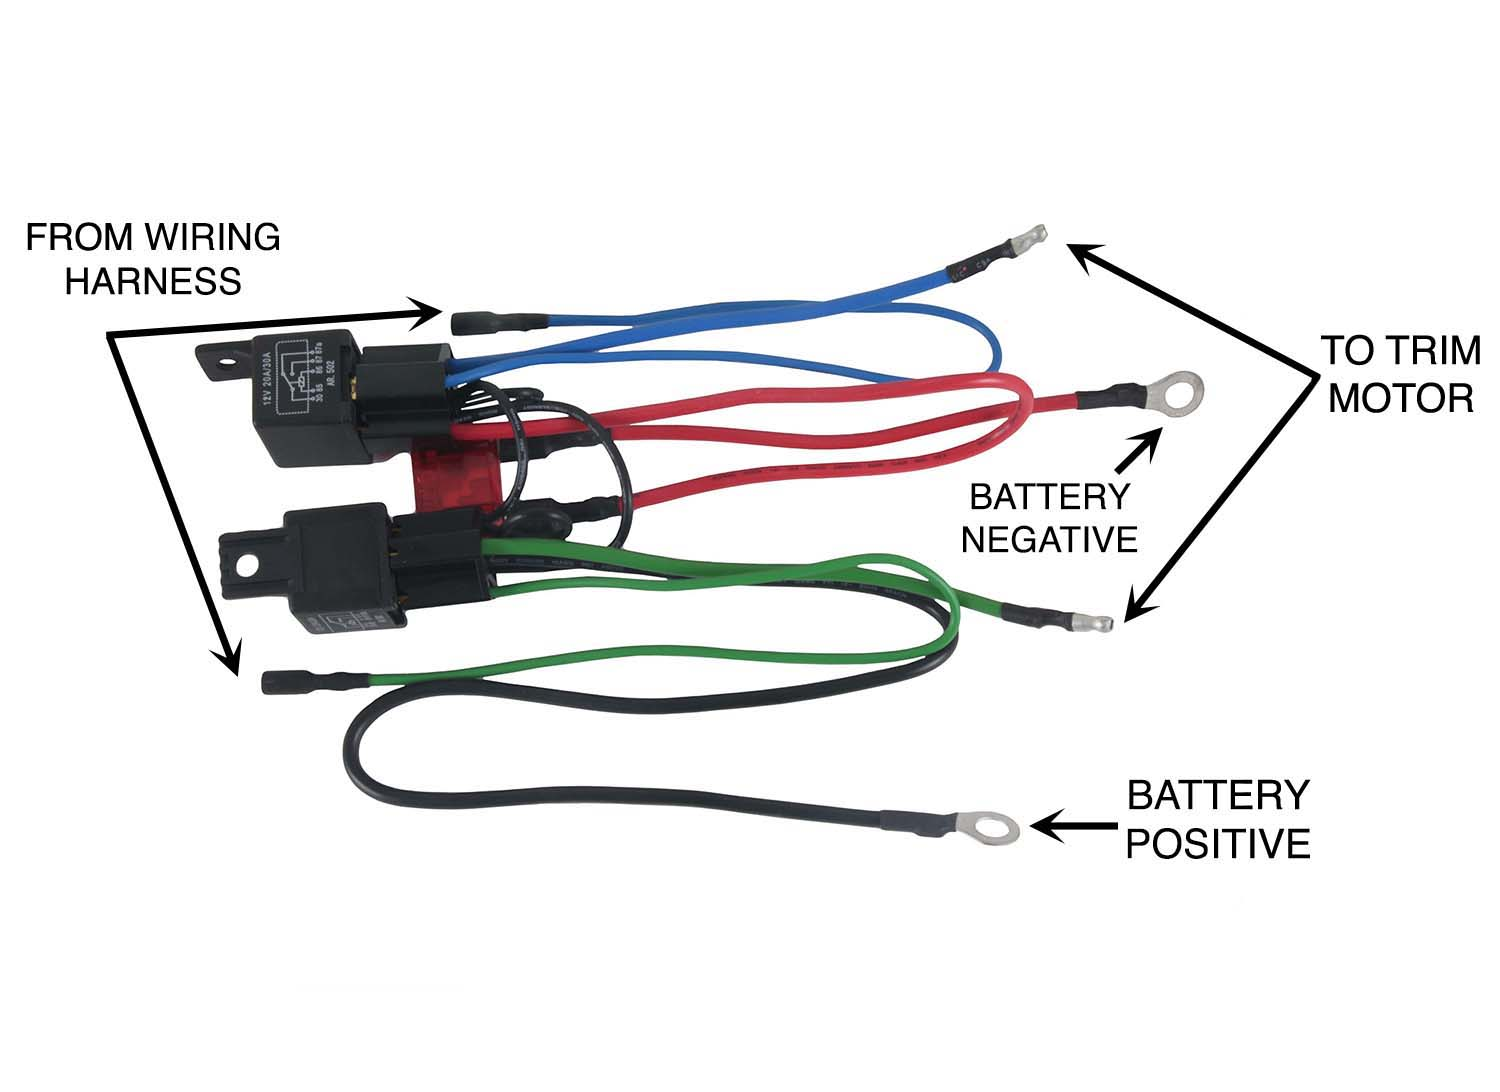 trim motor wiring diagram new wiring harness convert 3 wire tilt trim motor to 2 ... oildyne trim pump wiring diagram #14